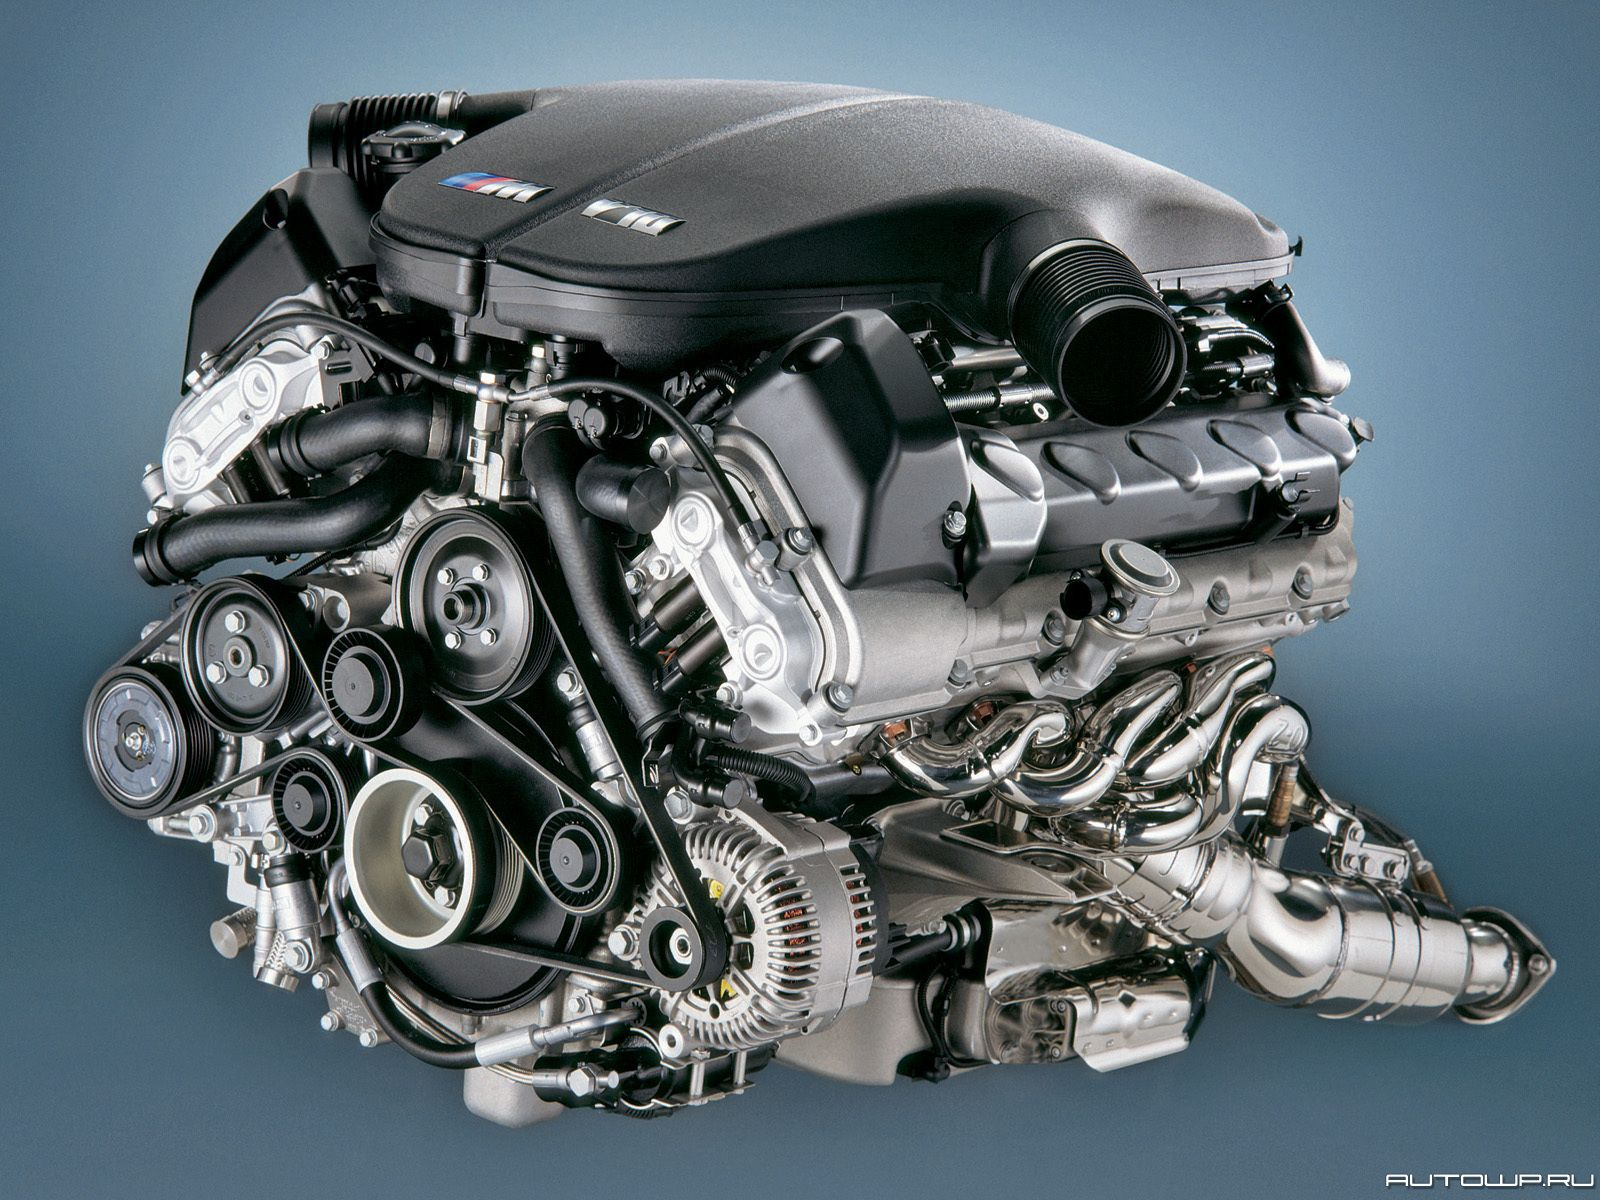 Bmw S85 5 0l Dohc V10 Bmw Engines Bmw Cars V10 Engine